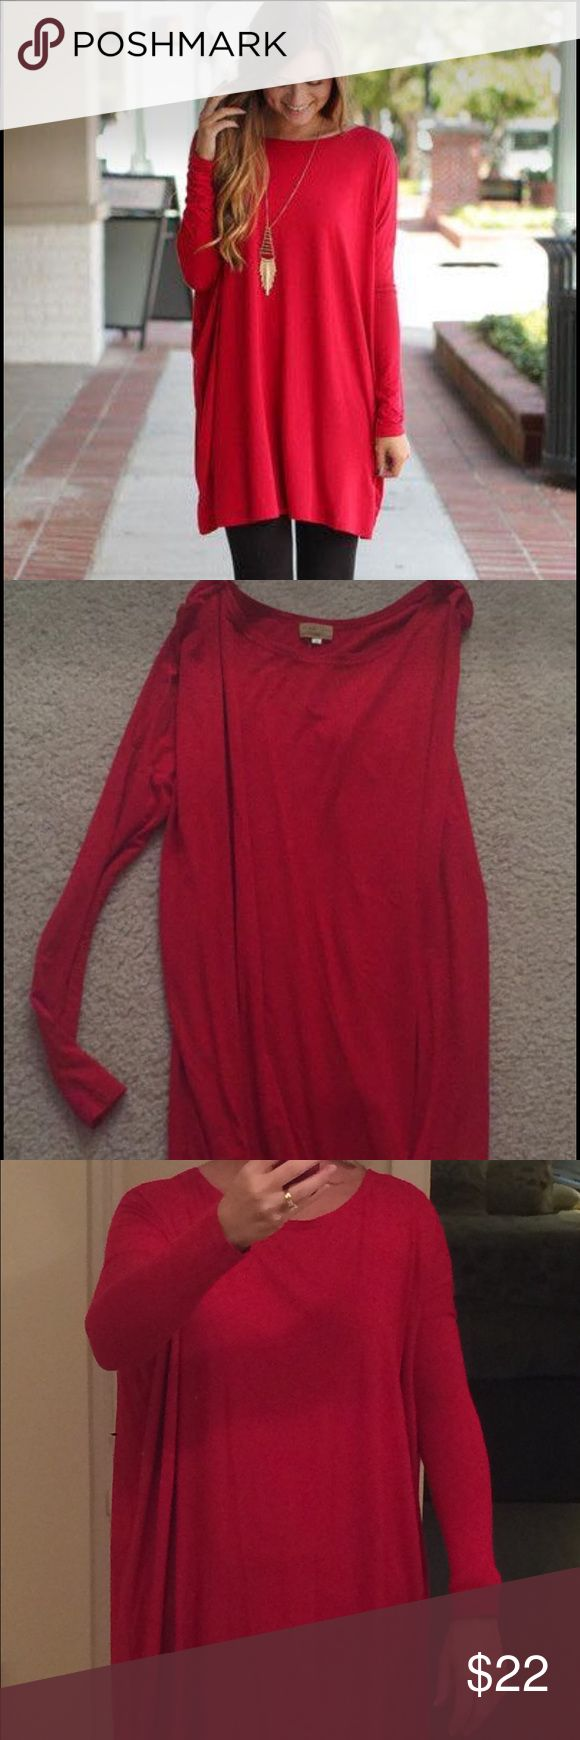 Red Piko tunic dress Small Red tunic Piko dress. Size Small. Perfect for the holidays. Piko Tops Tunics